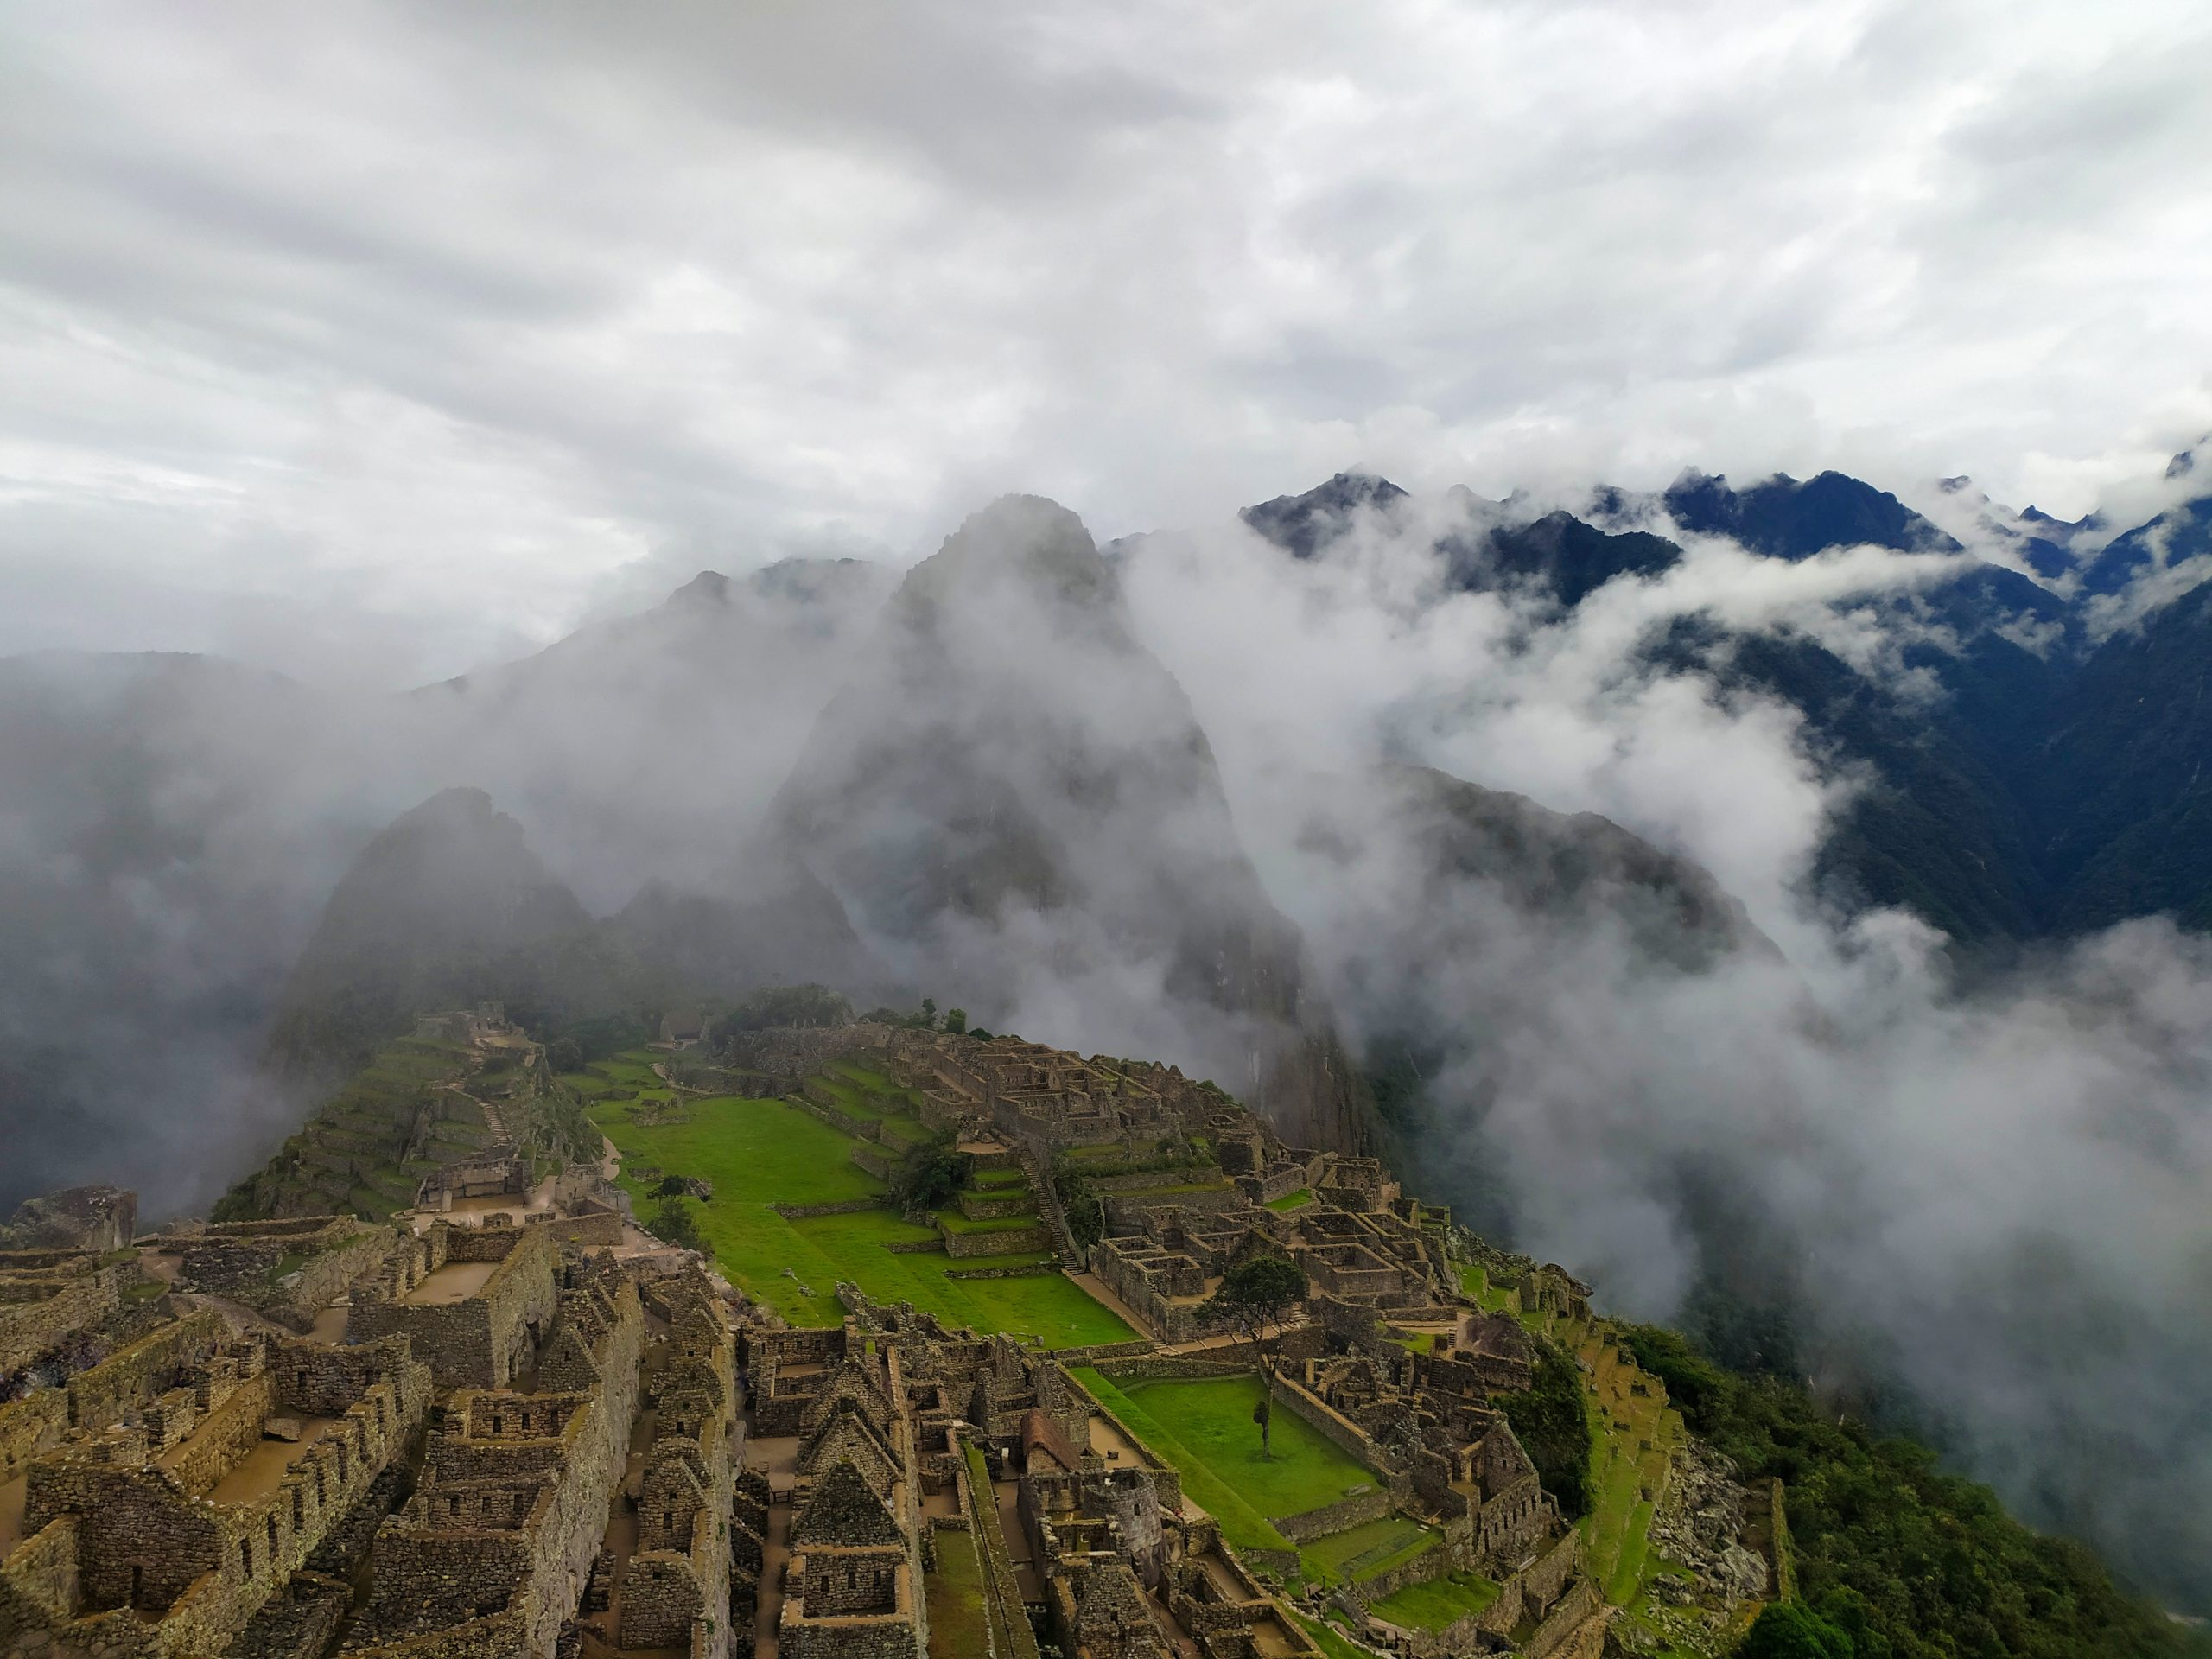 The ruins of Machu Picchu coming forth out of the clouds which still partly hide the mountainrange in the background